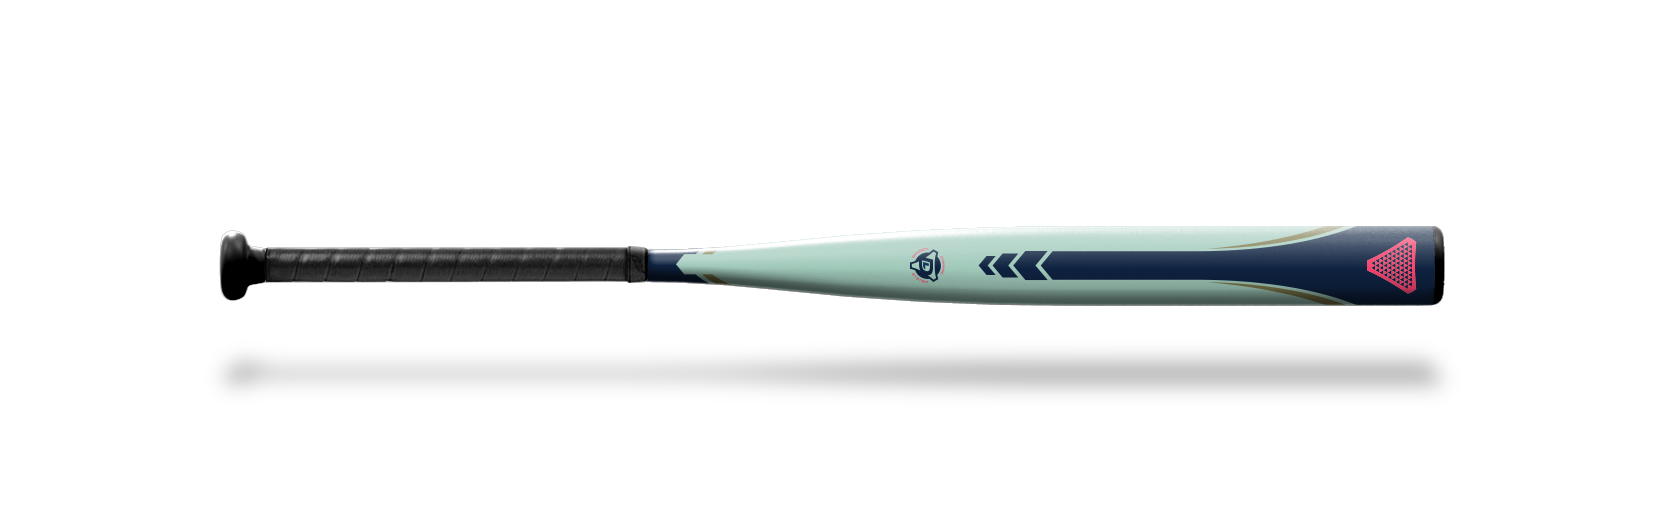 Graphic Softball Bat